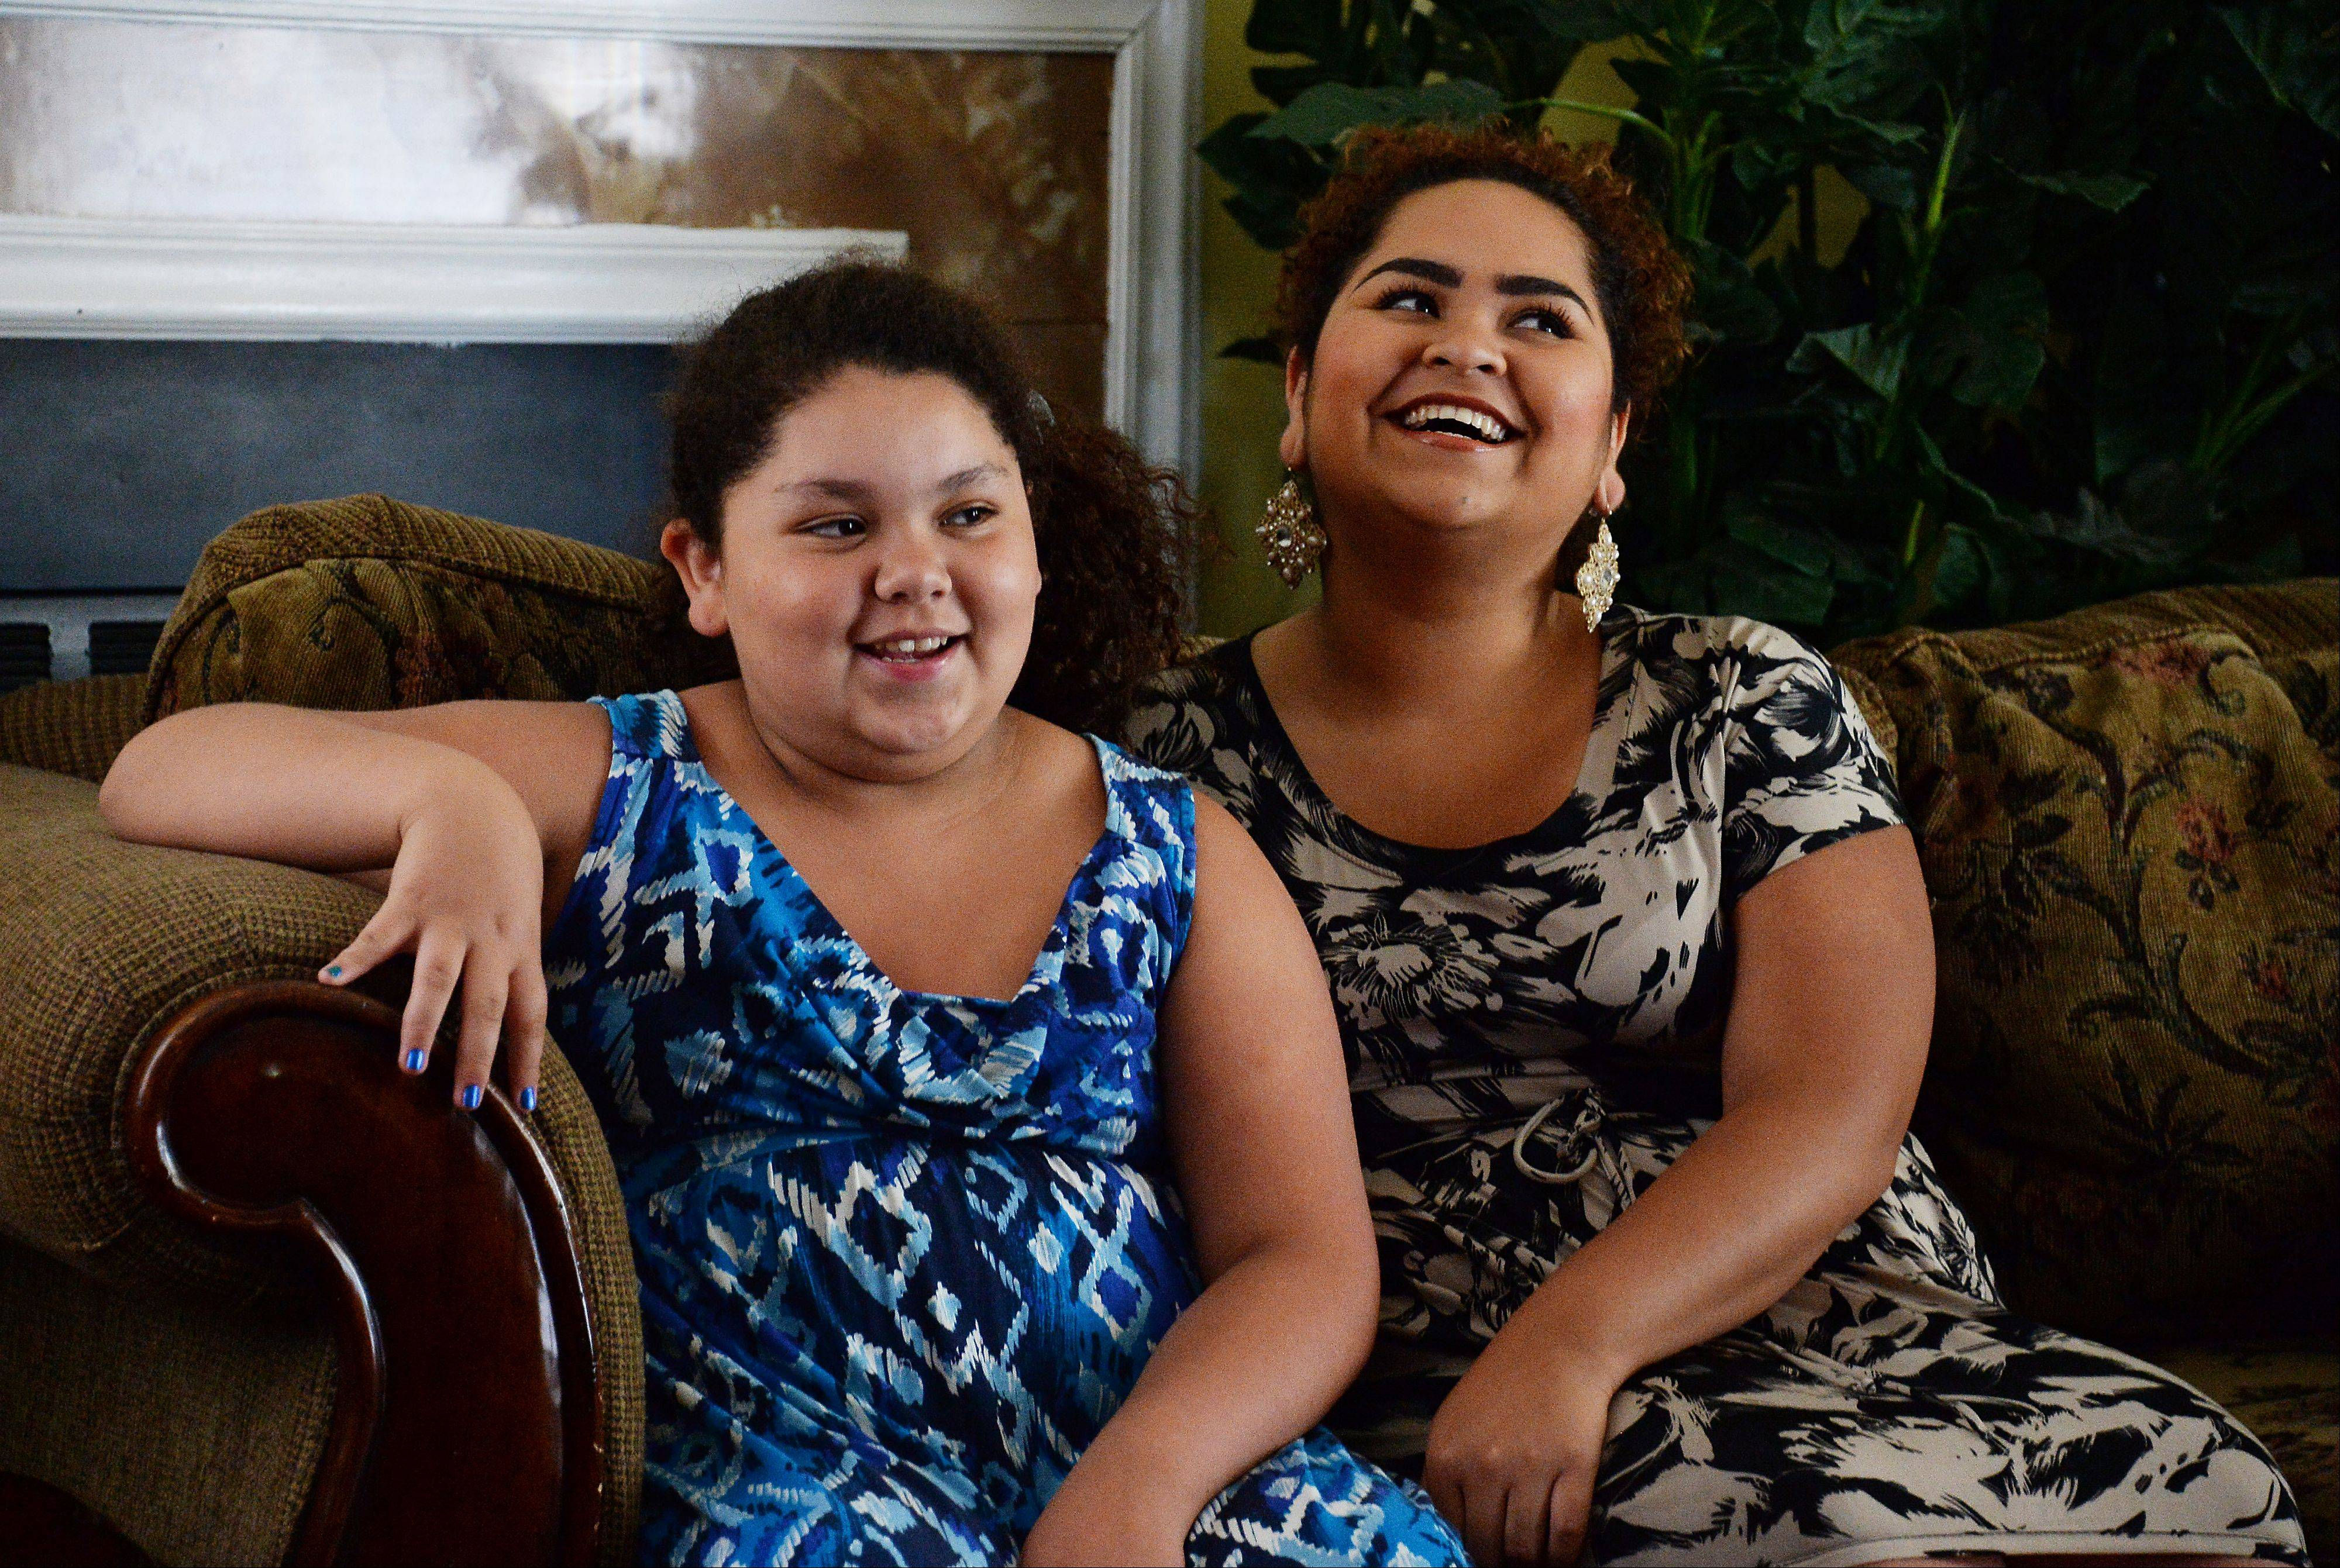 Love, determination, a commitment to family and selfless efforts of many people throughout the suburbs helped keep Greta Ramirez, left, and her older sister Karen together after a family tragedy.